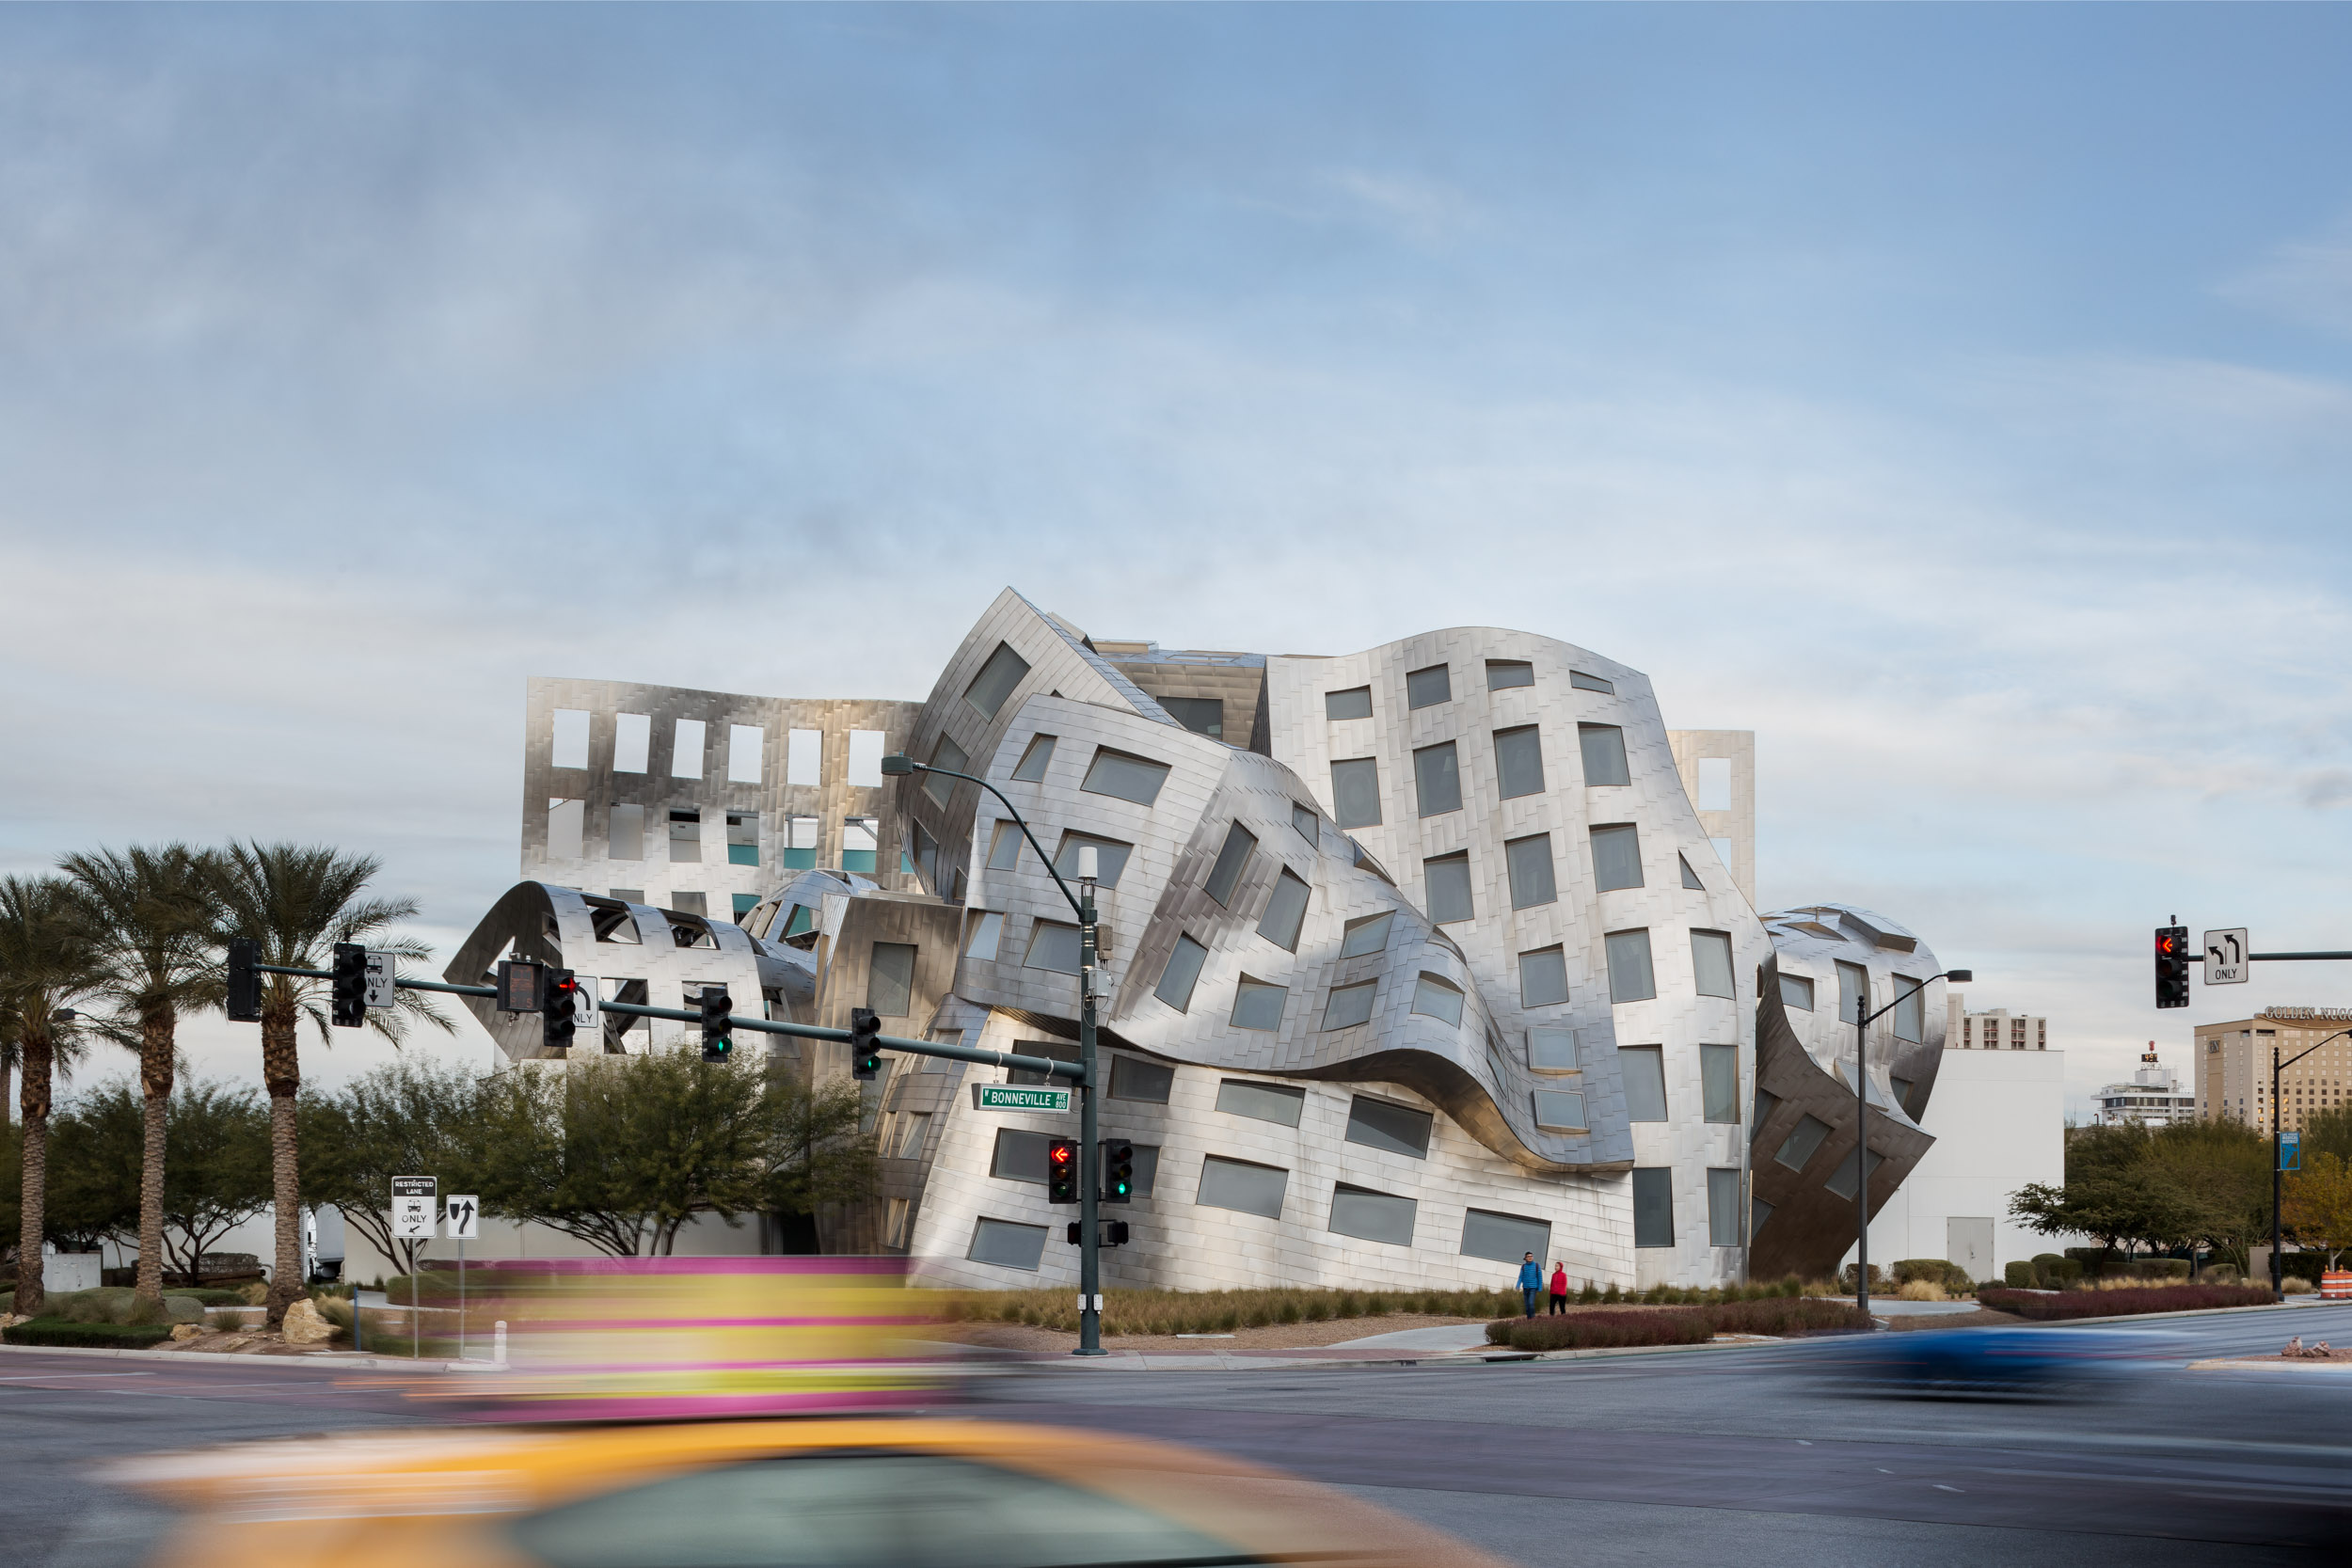 Lou Ruvo Center for Brain Health, Las Vegas, NV